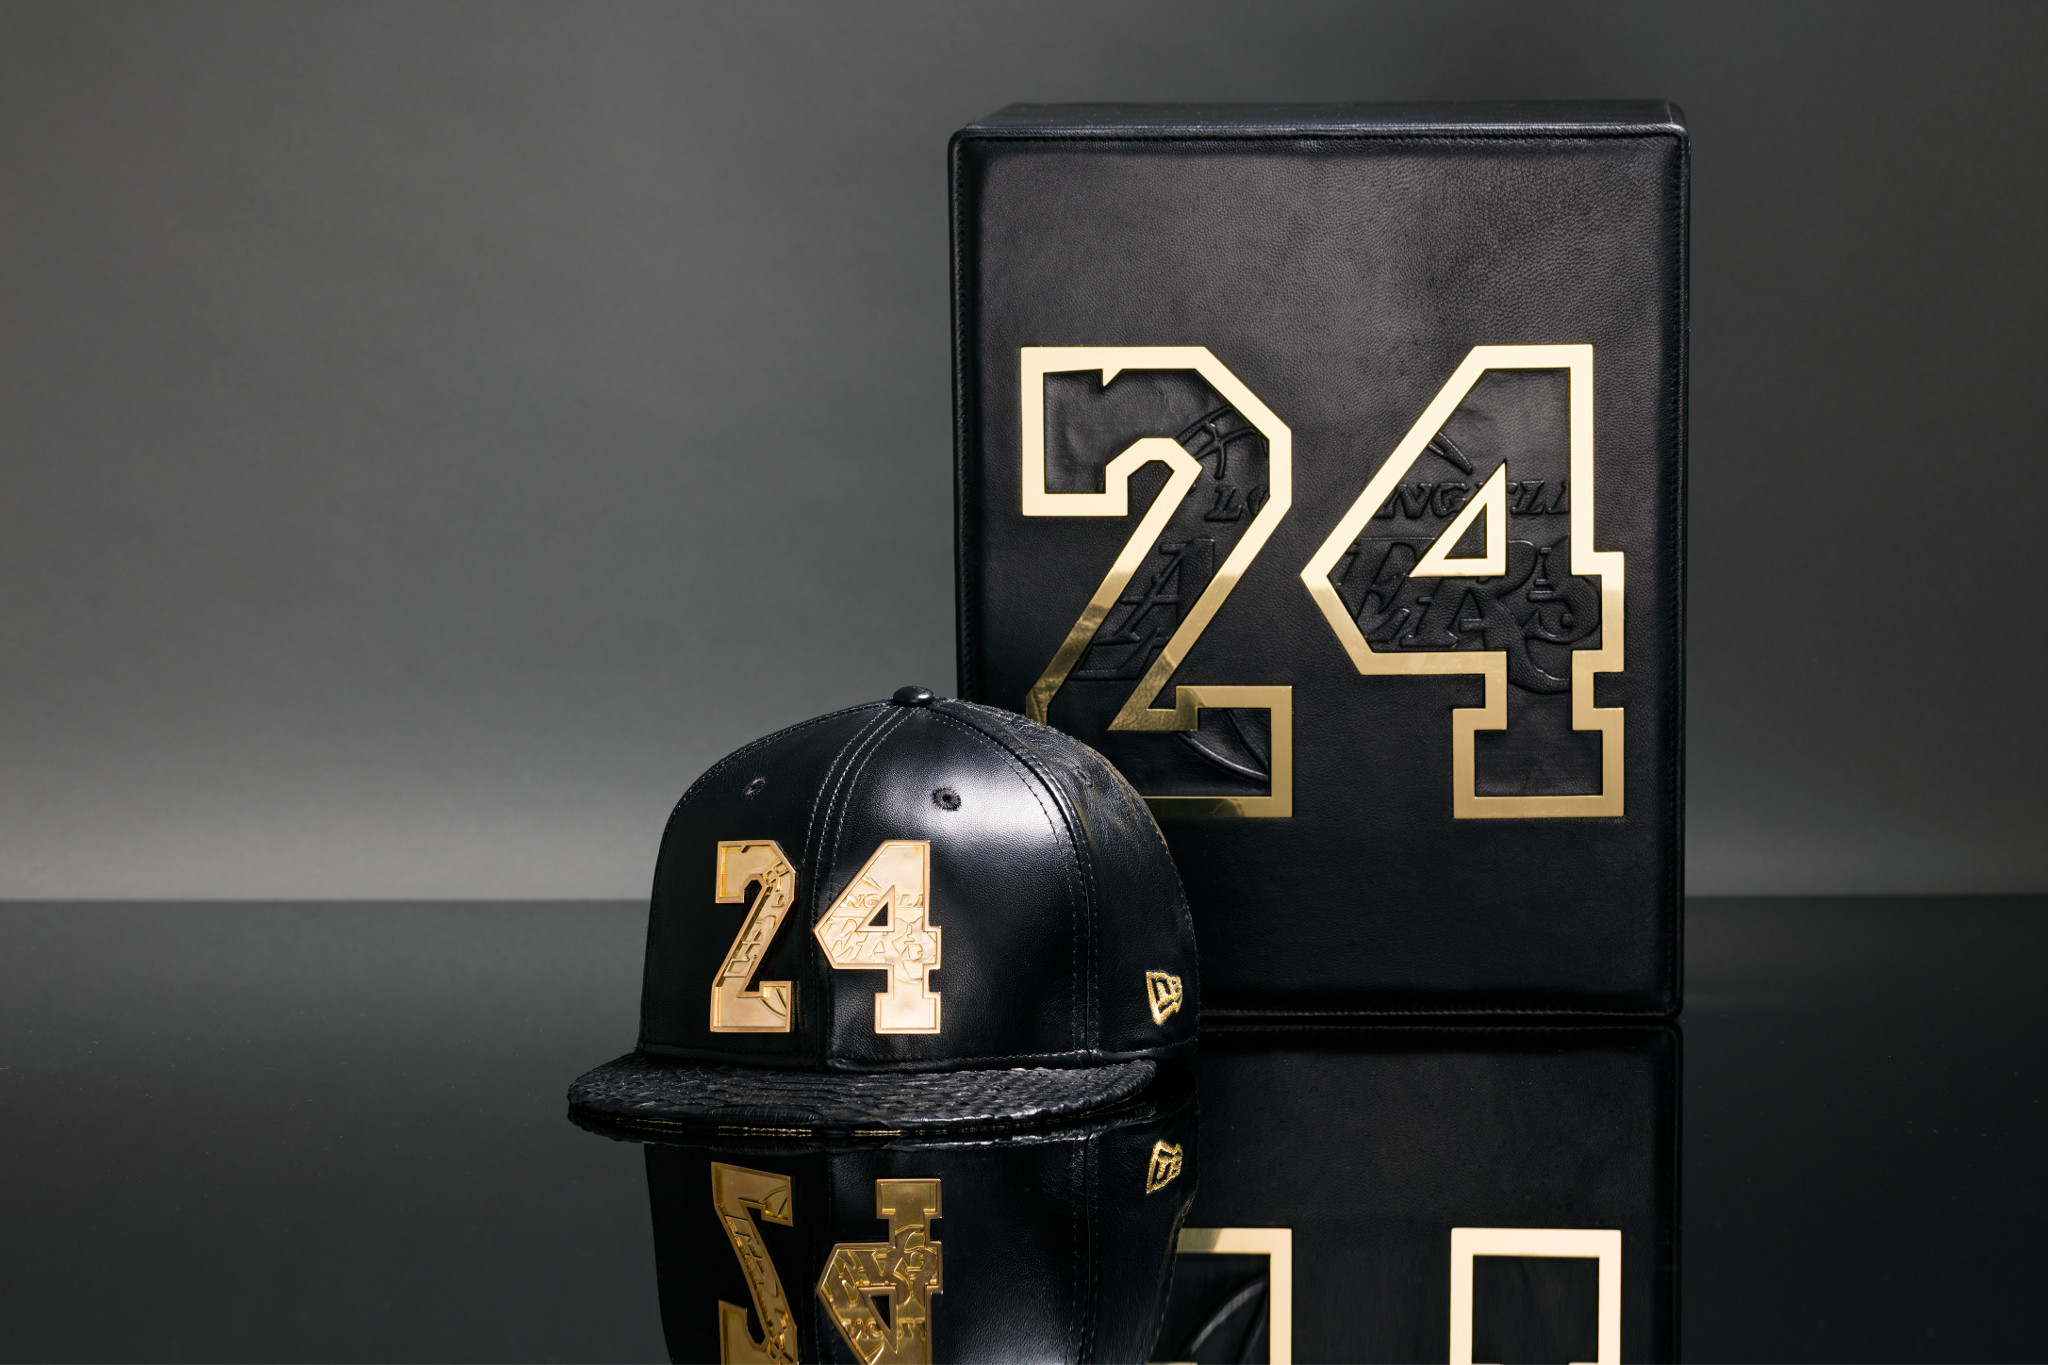 Say Bye to NBA Star Kobe Bryant With a $38,000 Cap and New ...